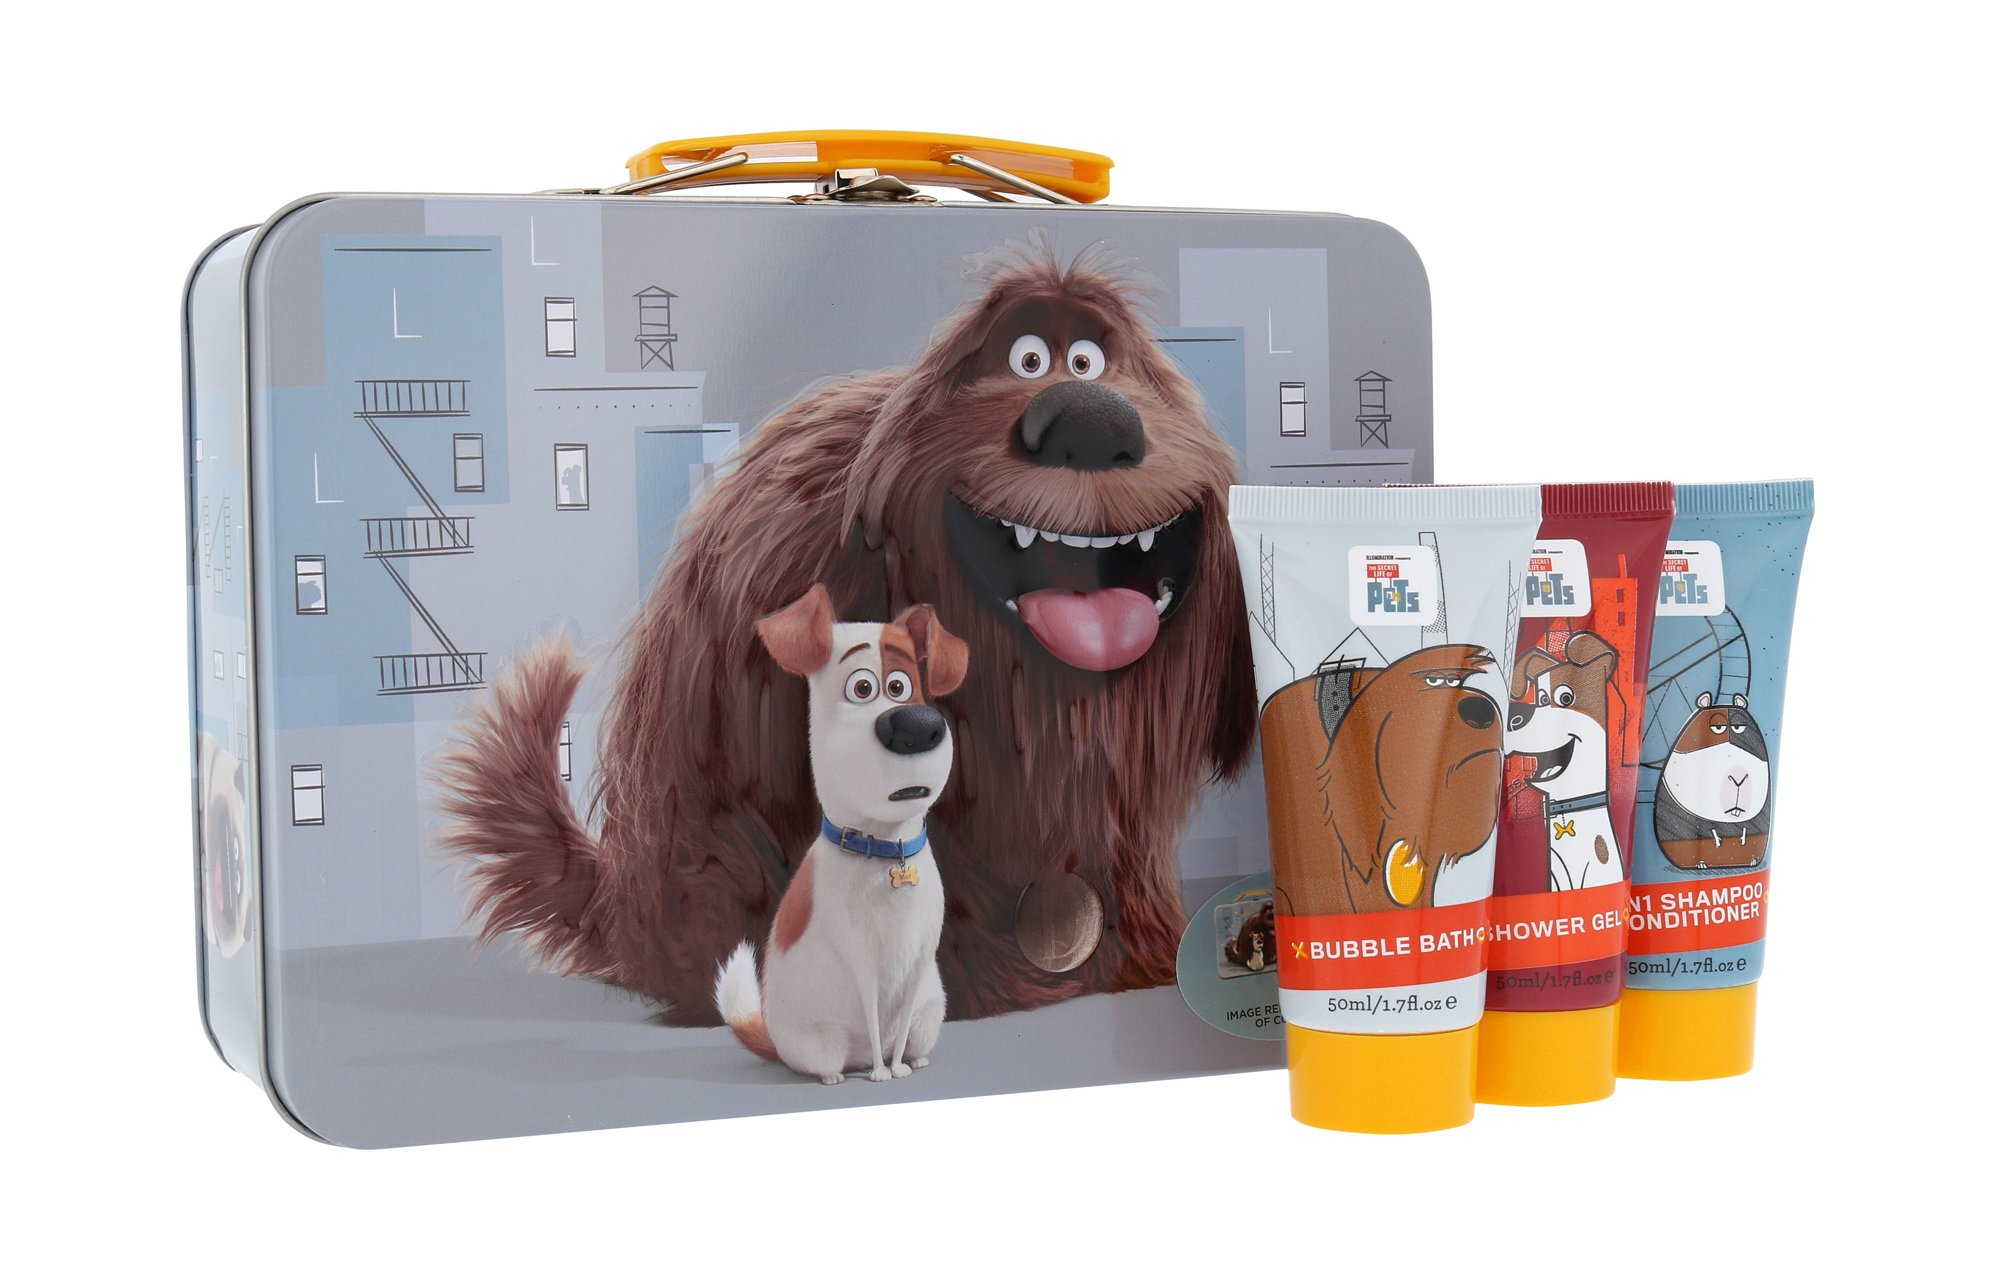 Universal The Secret Life Of Pets Shower gel 50ml